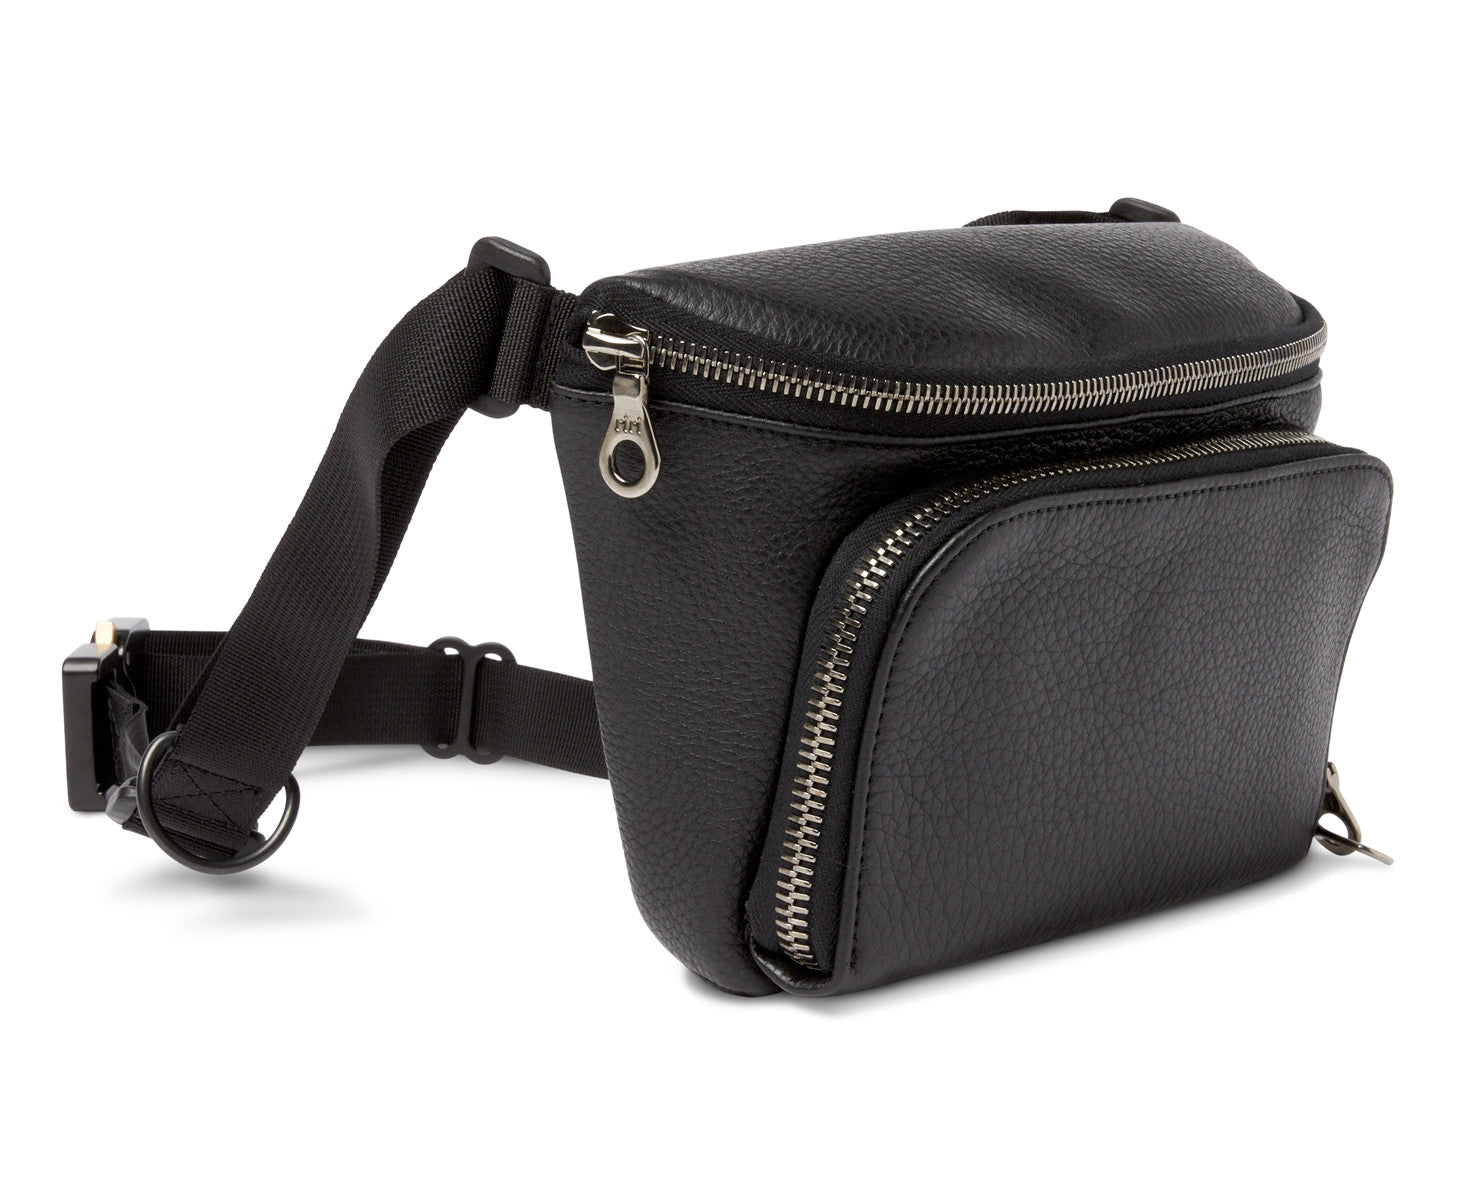 BELT BAG | KILLSPENCER® - Black Leather